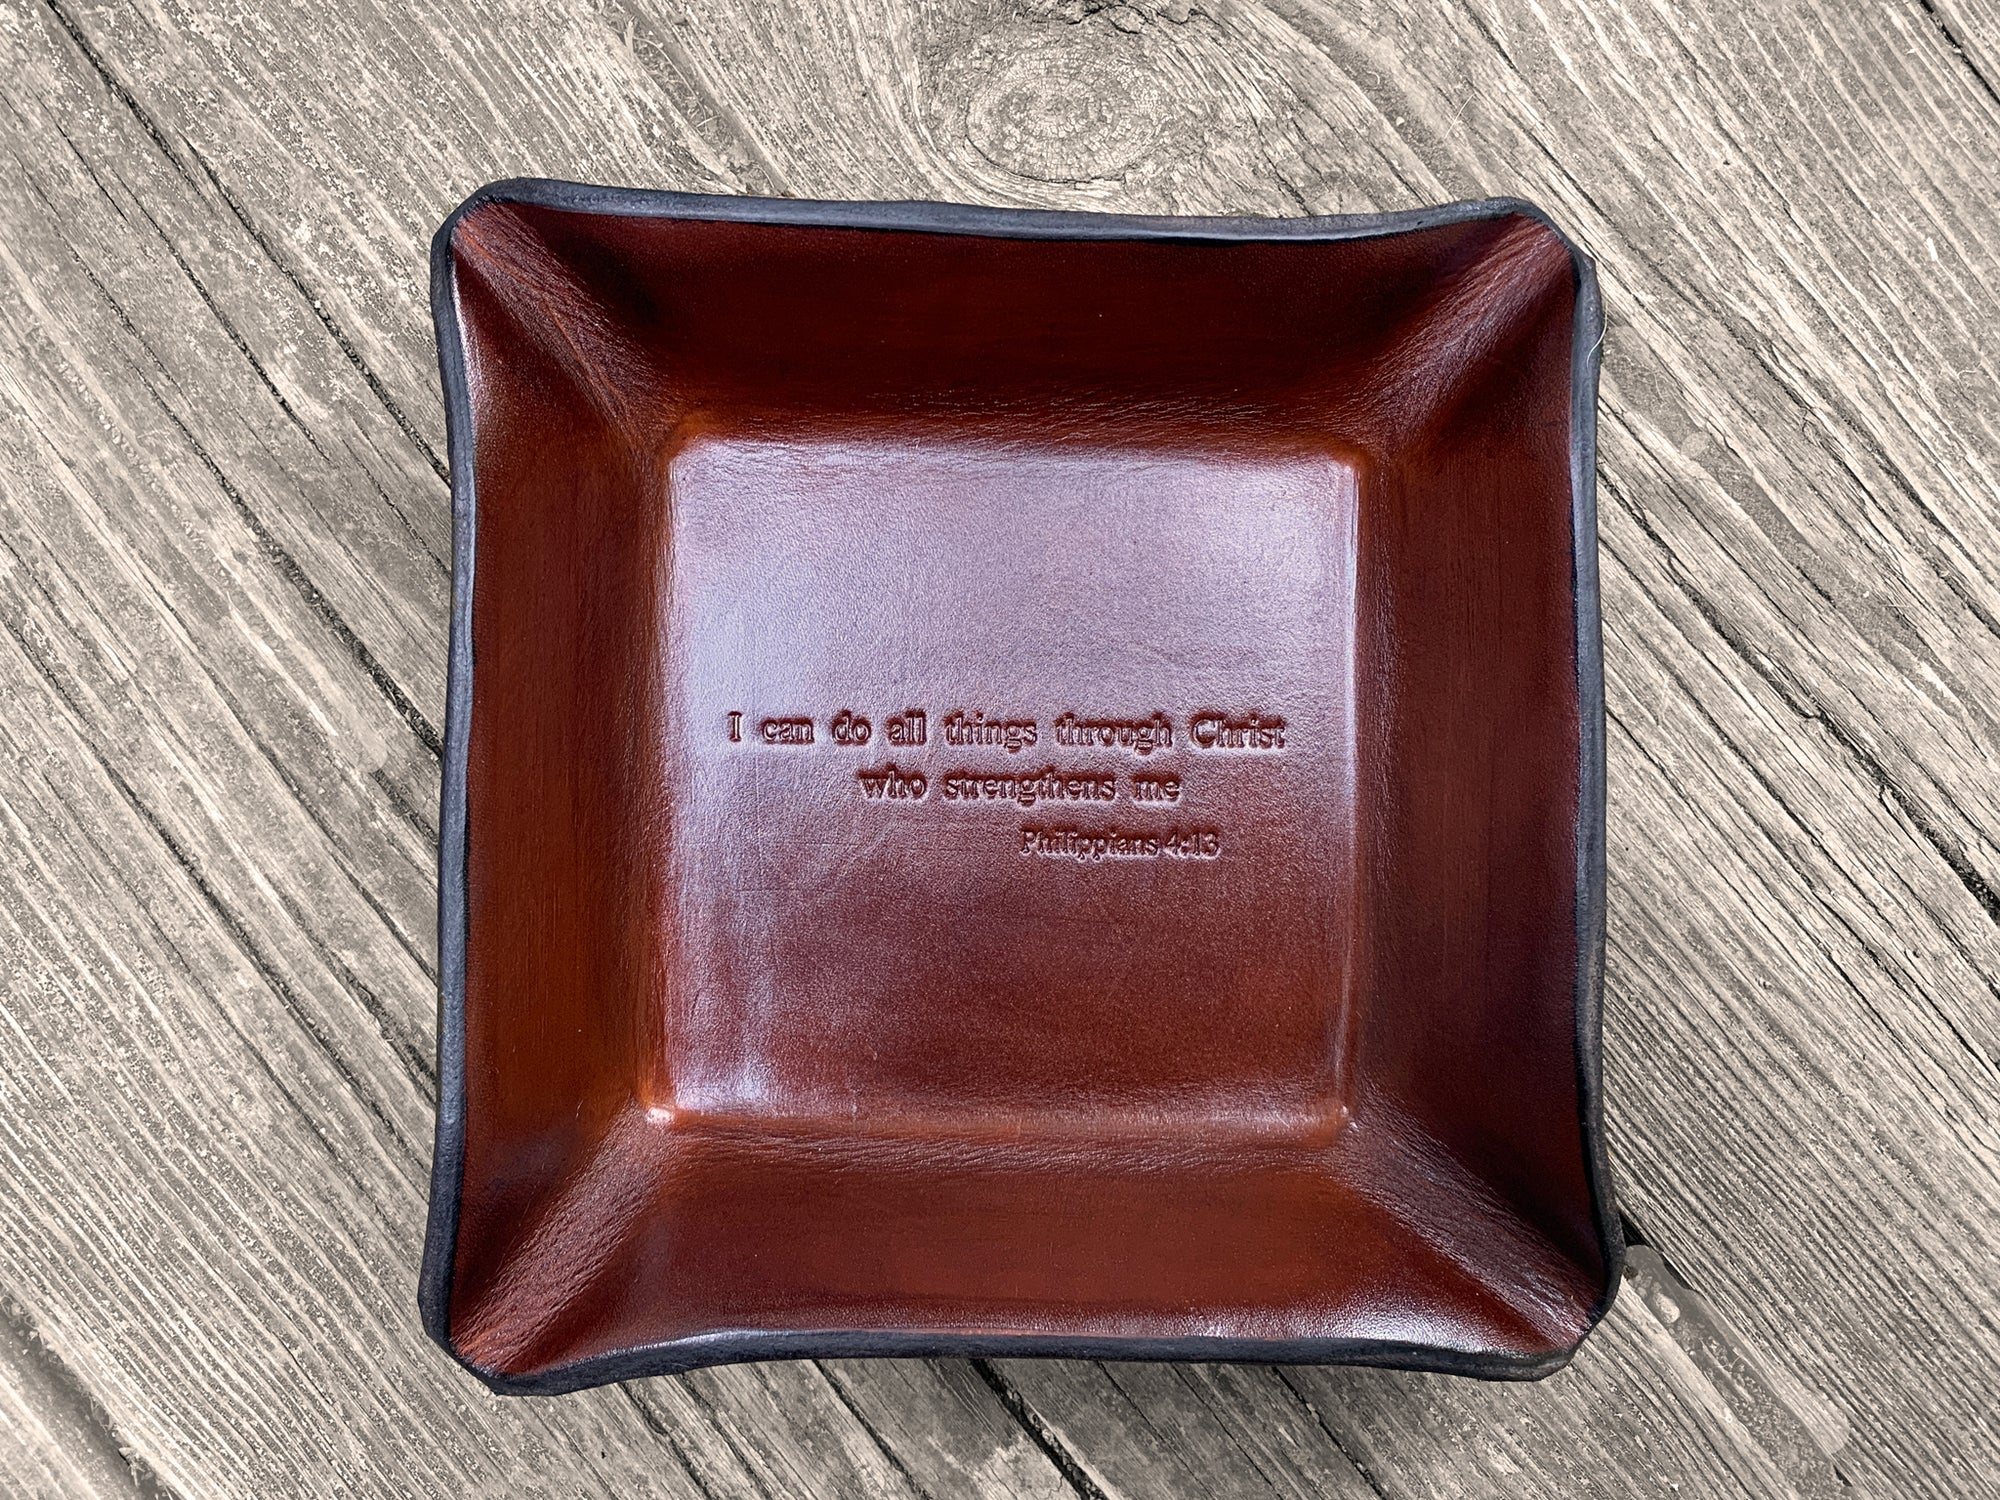 Our Philippians 4:13 Leather Tray is a Great Gift for a Christian Milestone